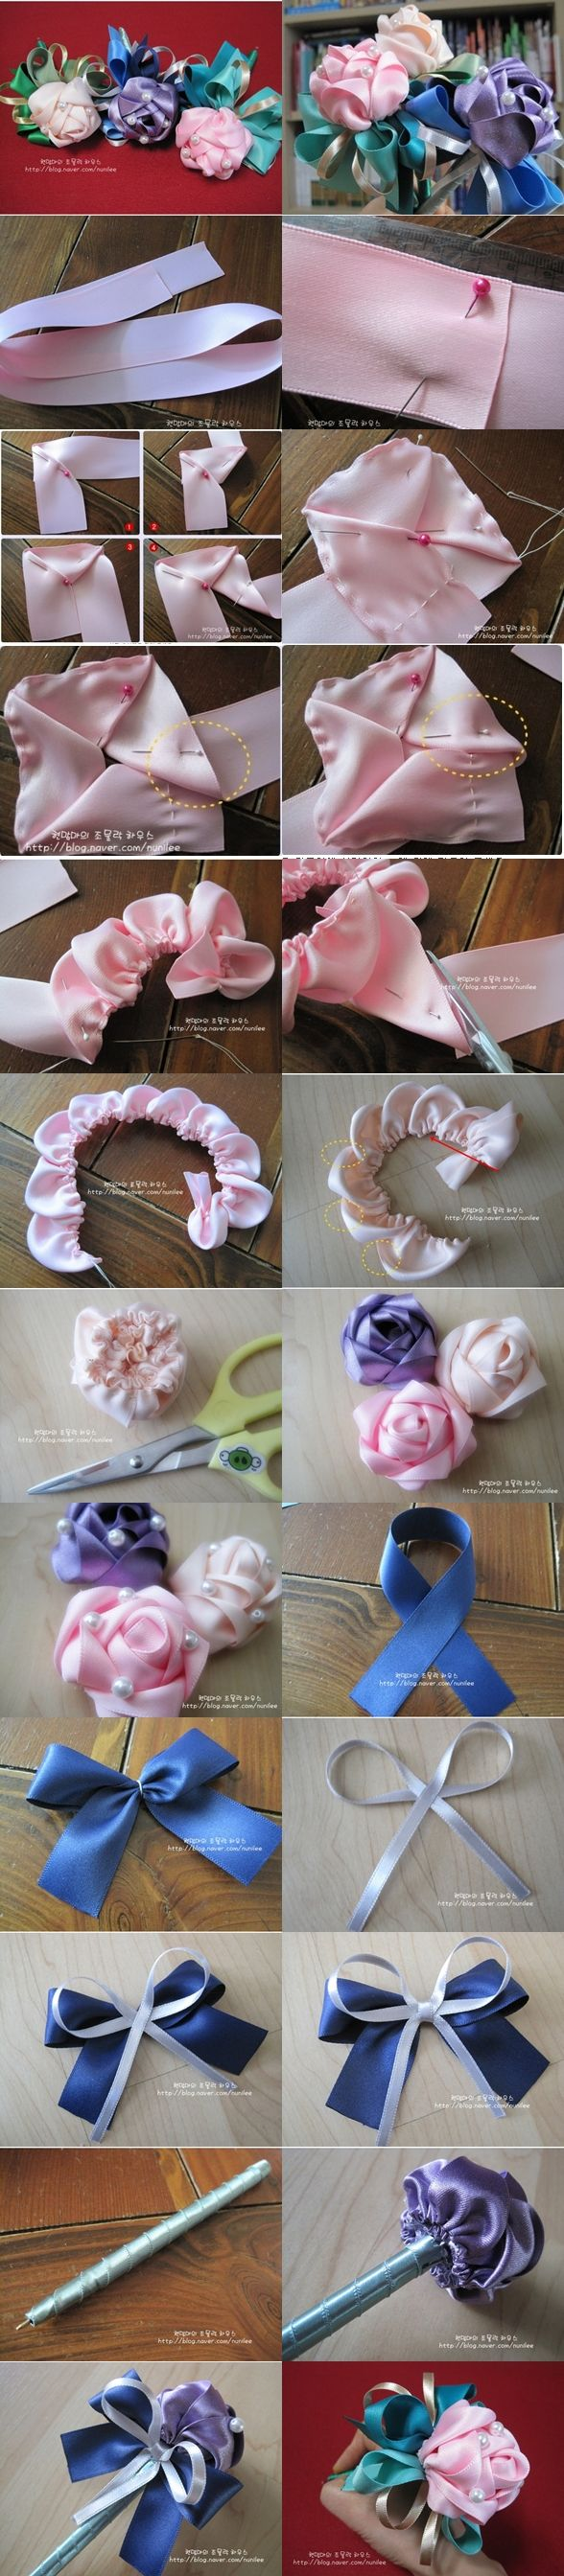 how to DIY Ribbon Rose Decoration Pen | www.FabArtDIY.com LIKE Us on Facebook ==> https://www.facebook.com/FabArtDIY